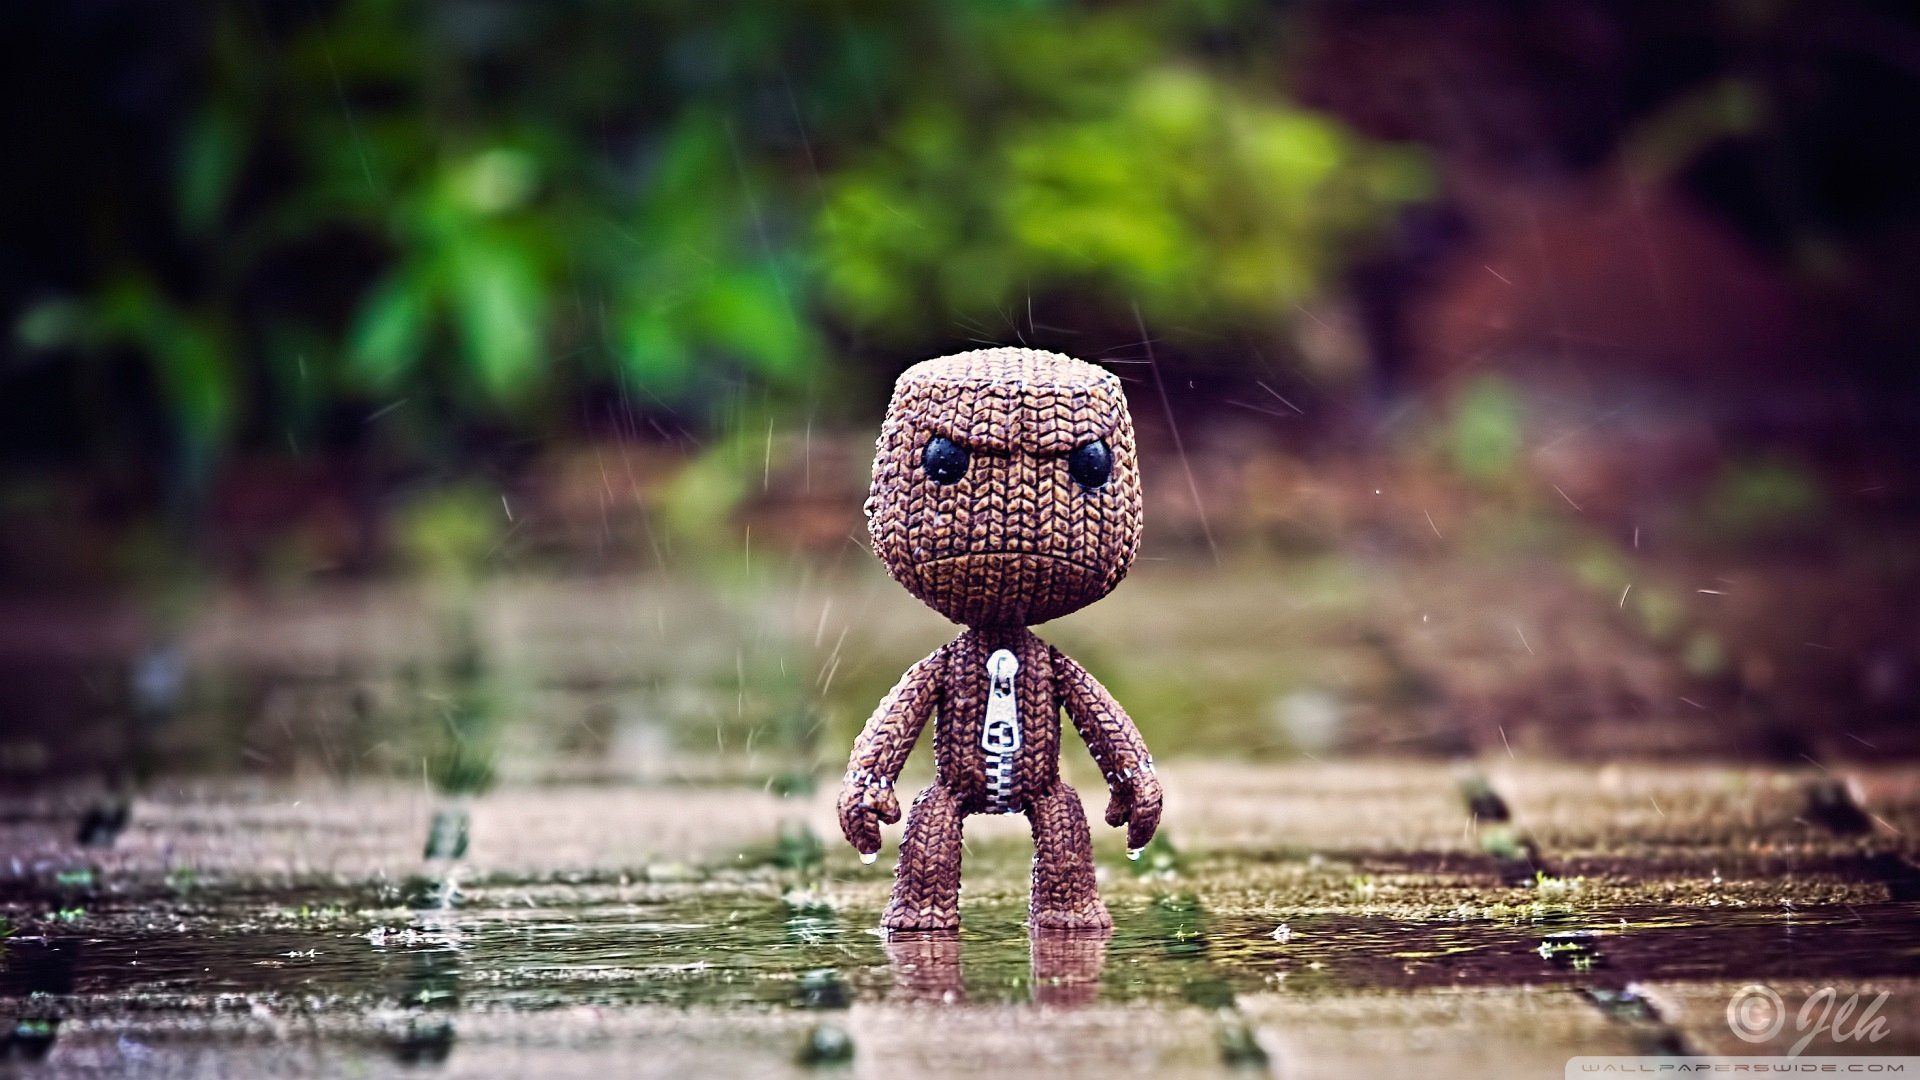 Wallpaper Puppet In The Rain X Full Hd x | wallpapers | Pinterest